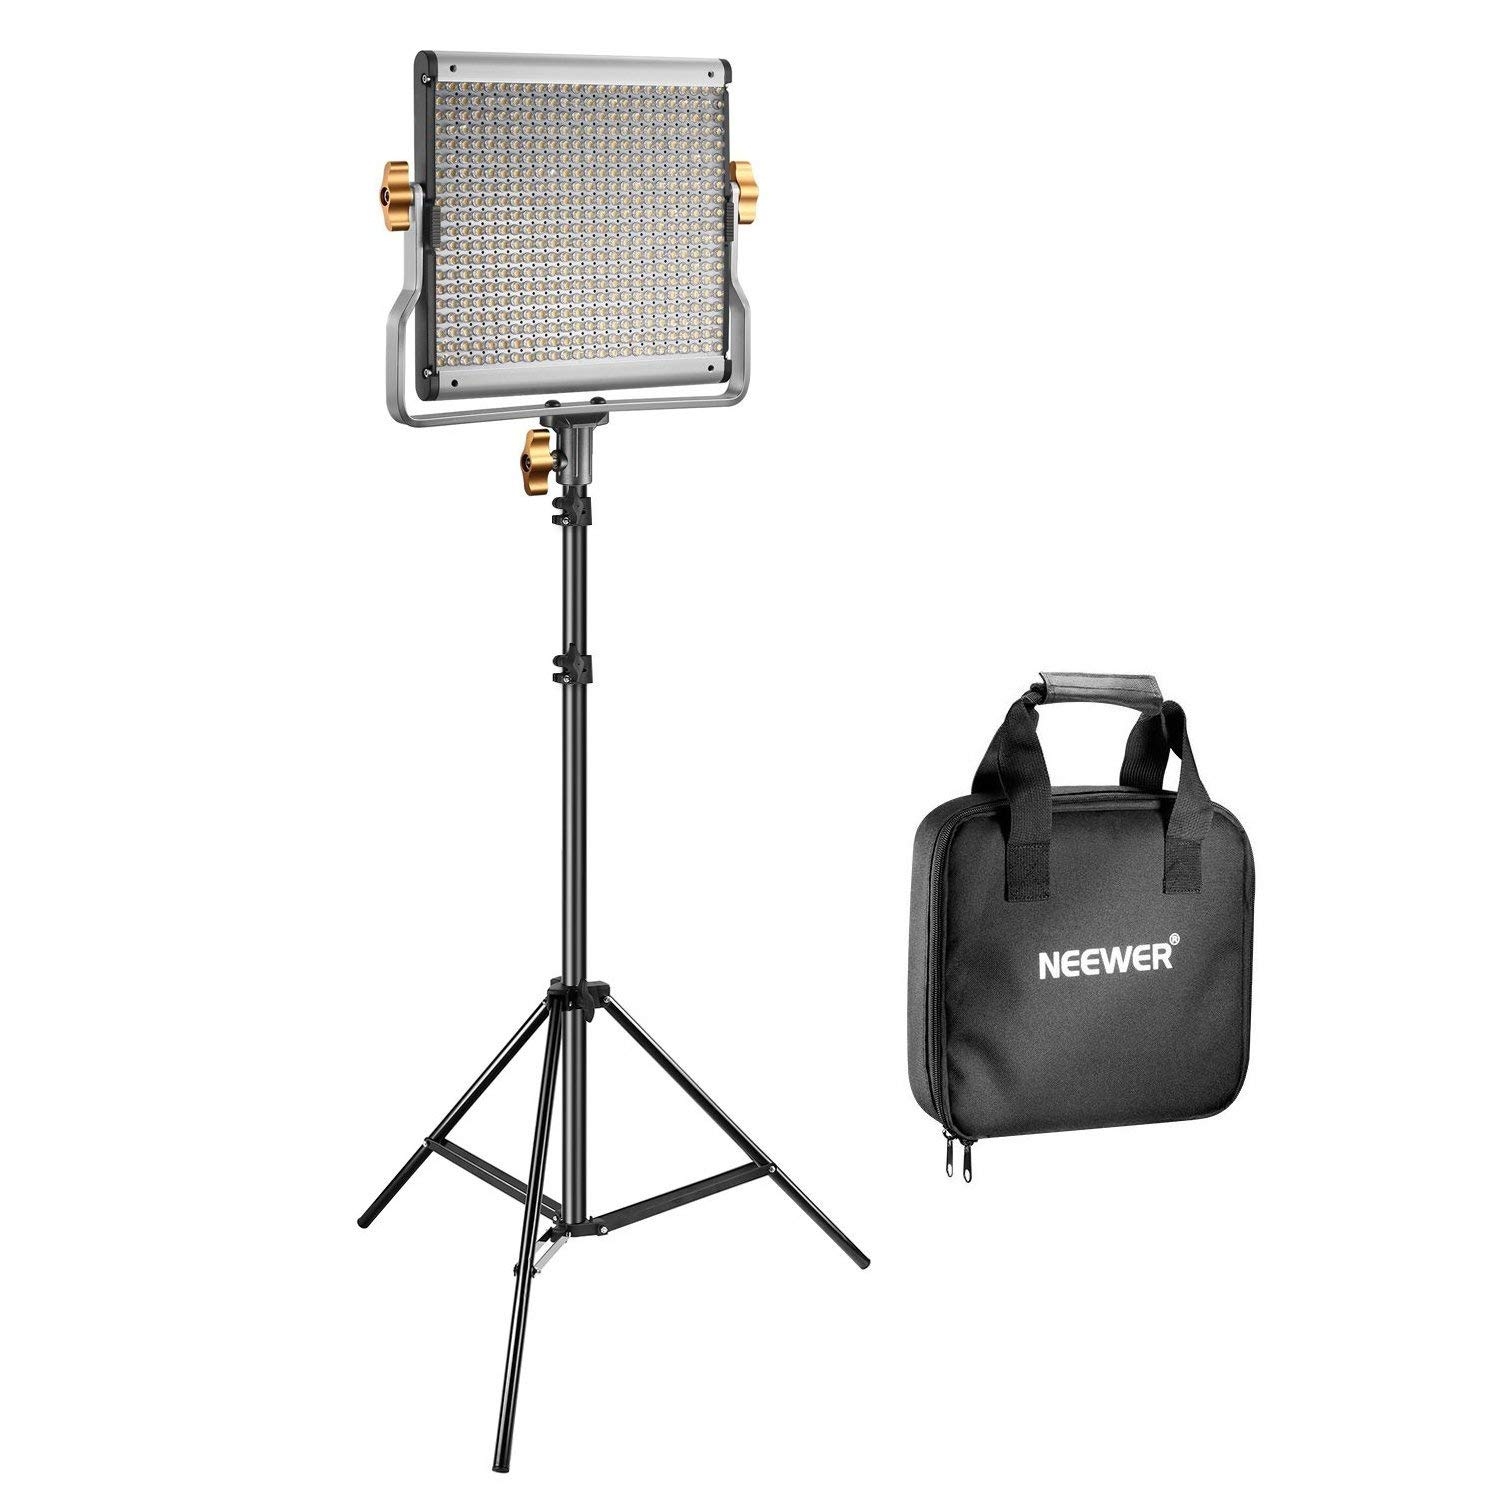 Neewer 480 LED Video Light and Stand Lighting Kit - Dimmable Bi-color LED Panel with U Bracket (3200-5600K,CRI 96+) and 75-inch Light Stand for Photo Studio Portrait,YouTube Video Photography